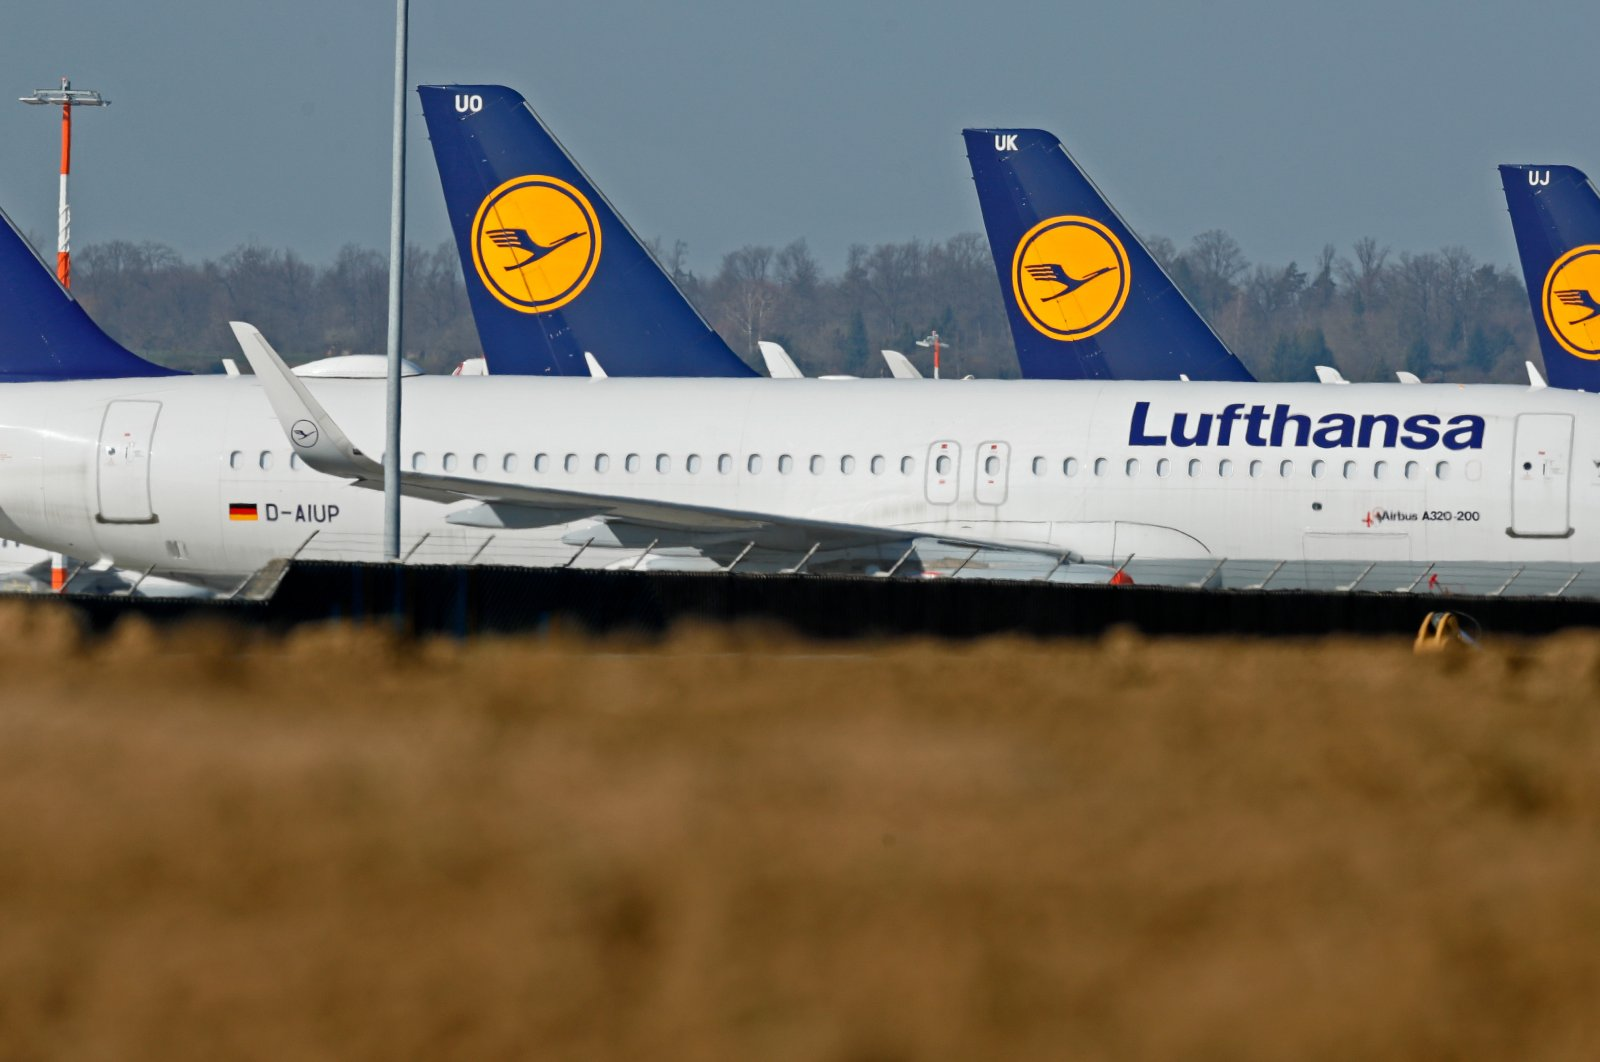 At the peak of lockdown measures, German aviation giant Lufthanser was posting loses of up to 1 million euros per hour, April 29, 2020 (IHA Photo)